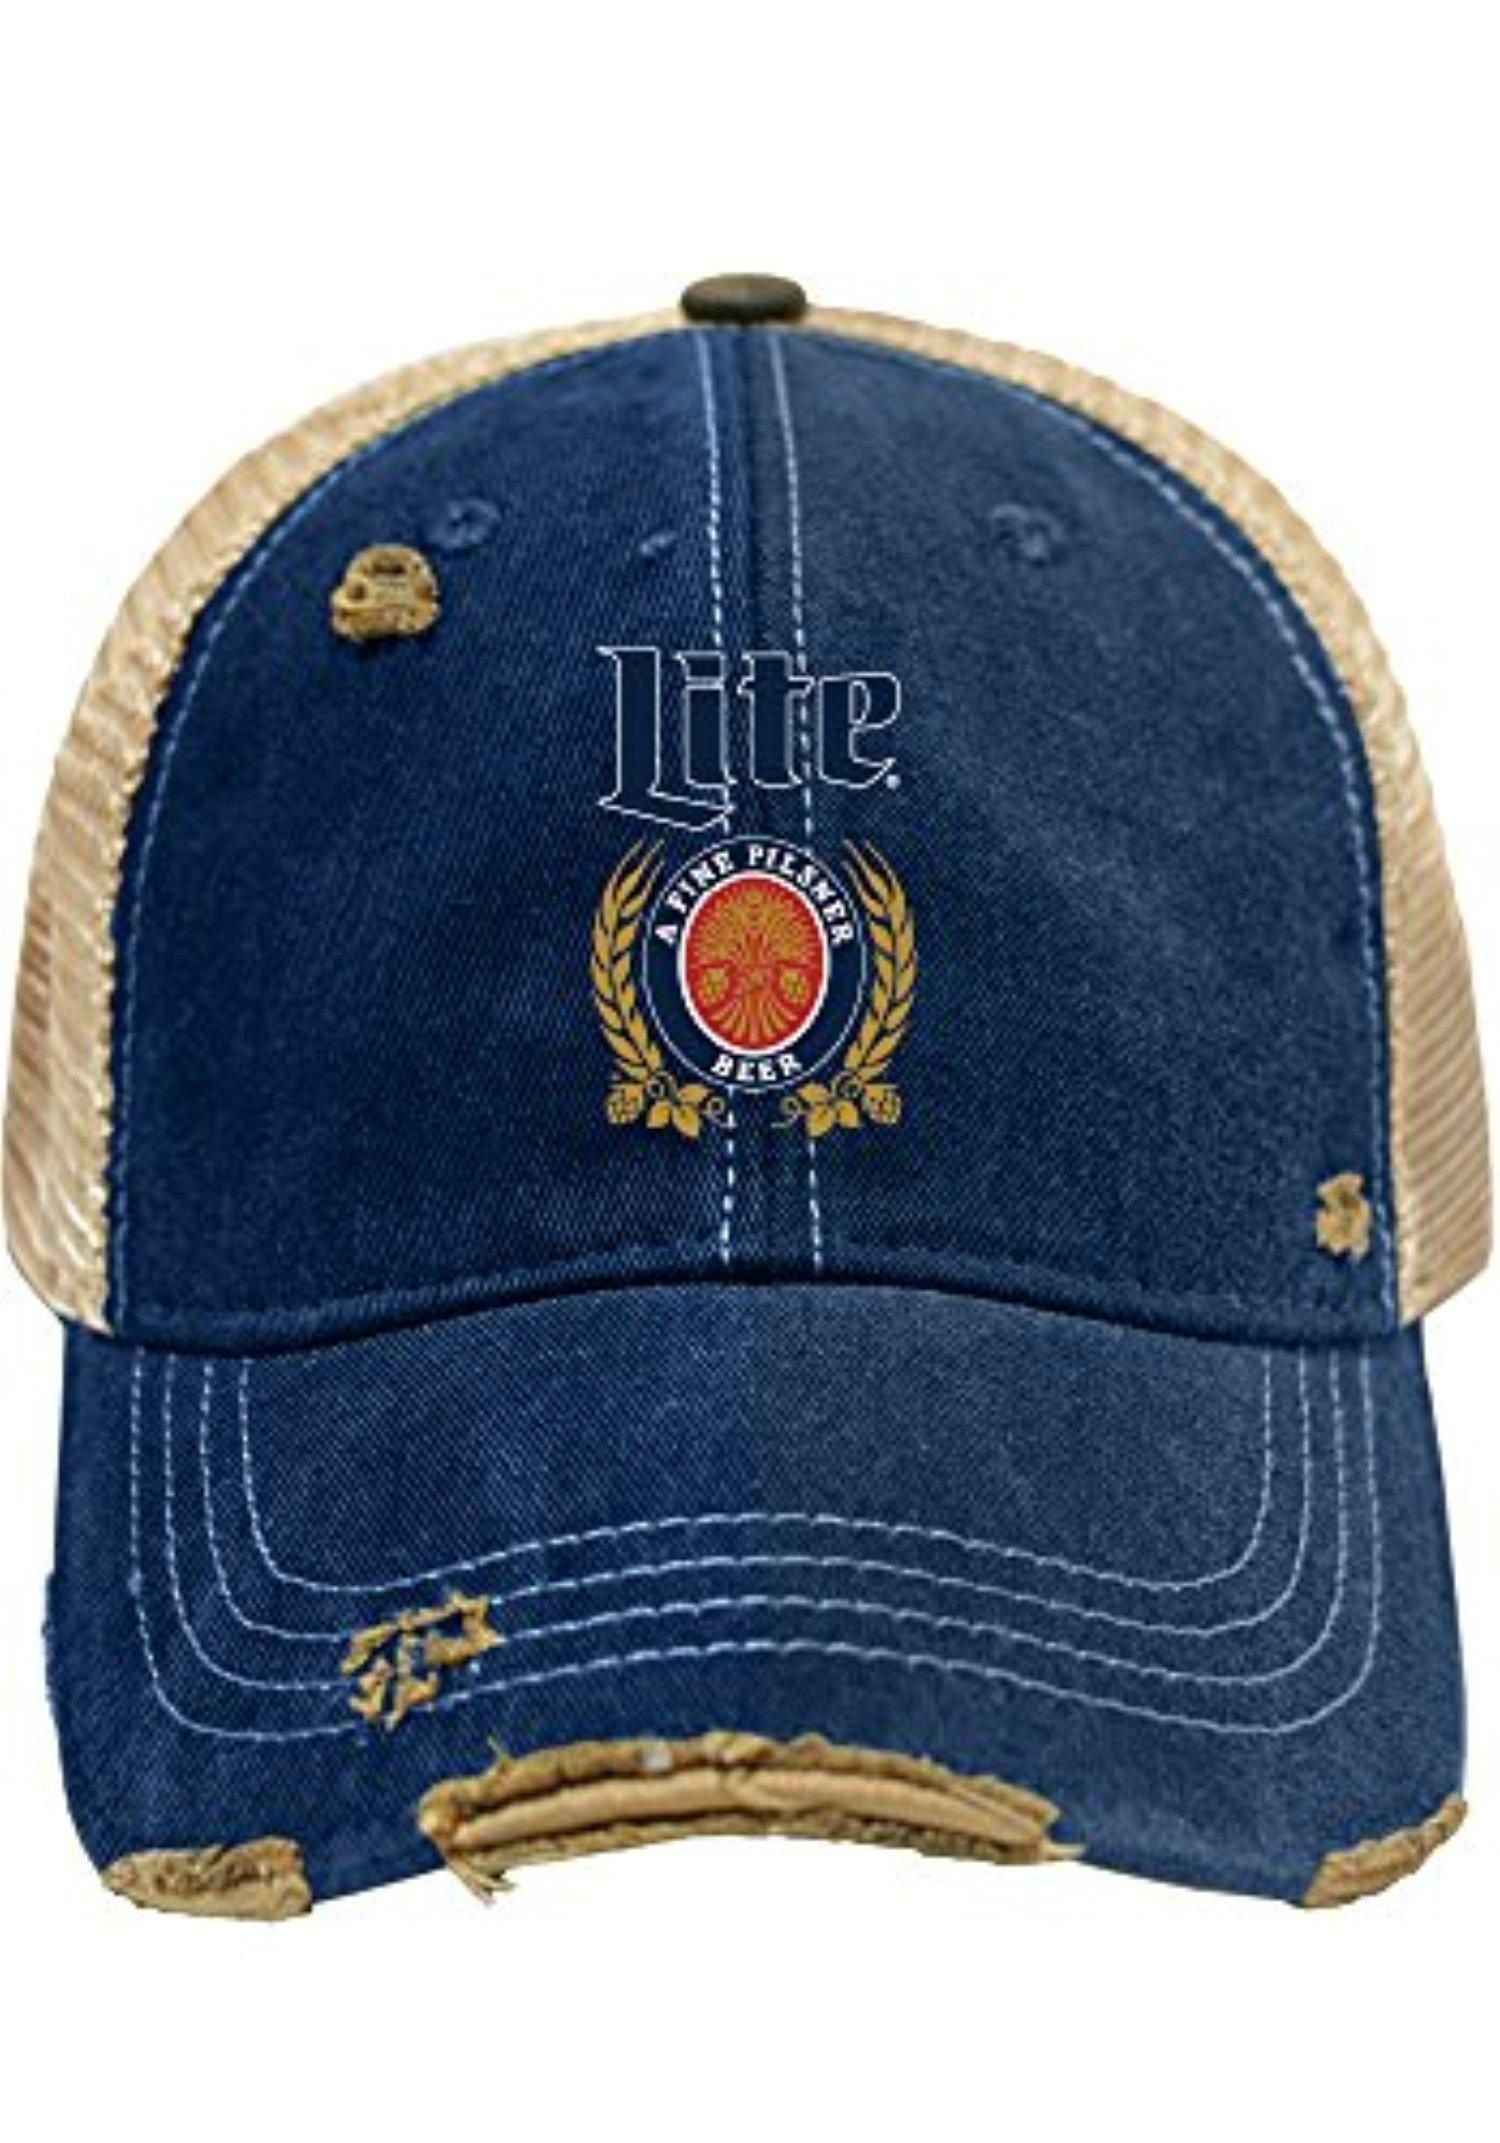 46bc28e0a5d55 Miller Lite Brewing Company Retro Brand Vintage Mesh Beer Adjustable Hat Cap  - Brought to you by Avarsha.com